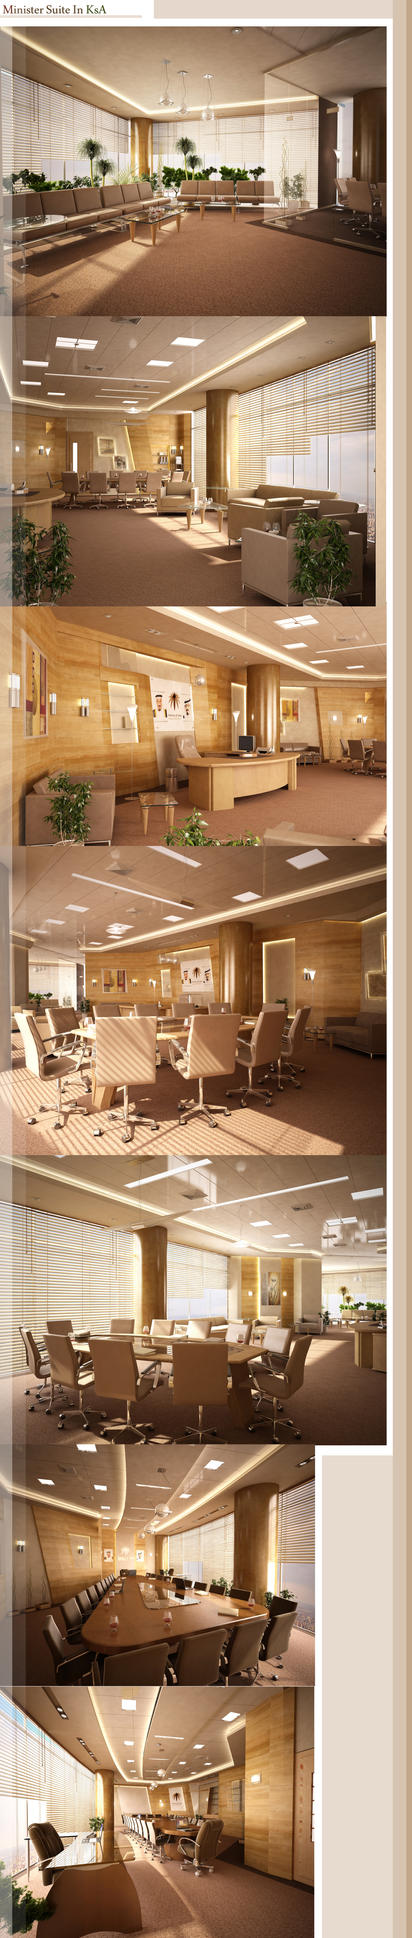 Minister Suite by Amr-Maged